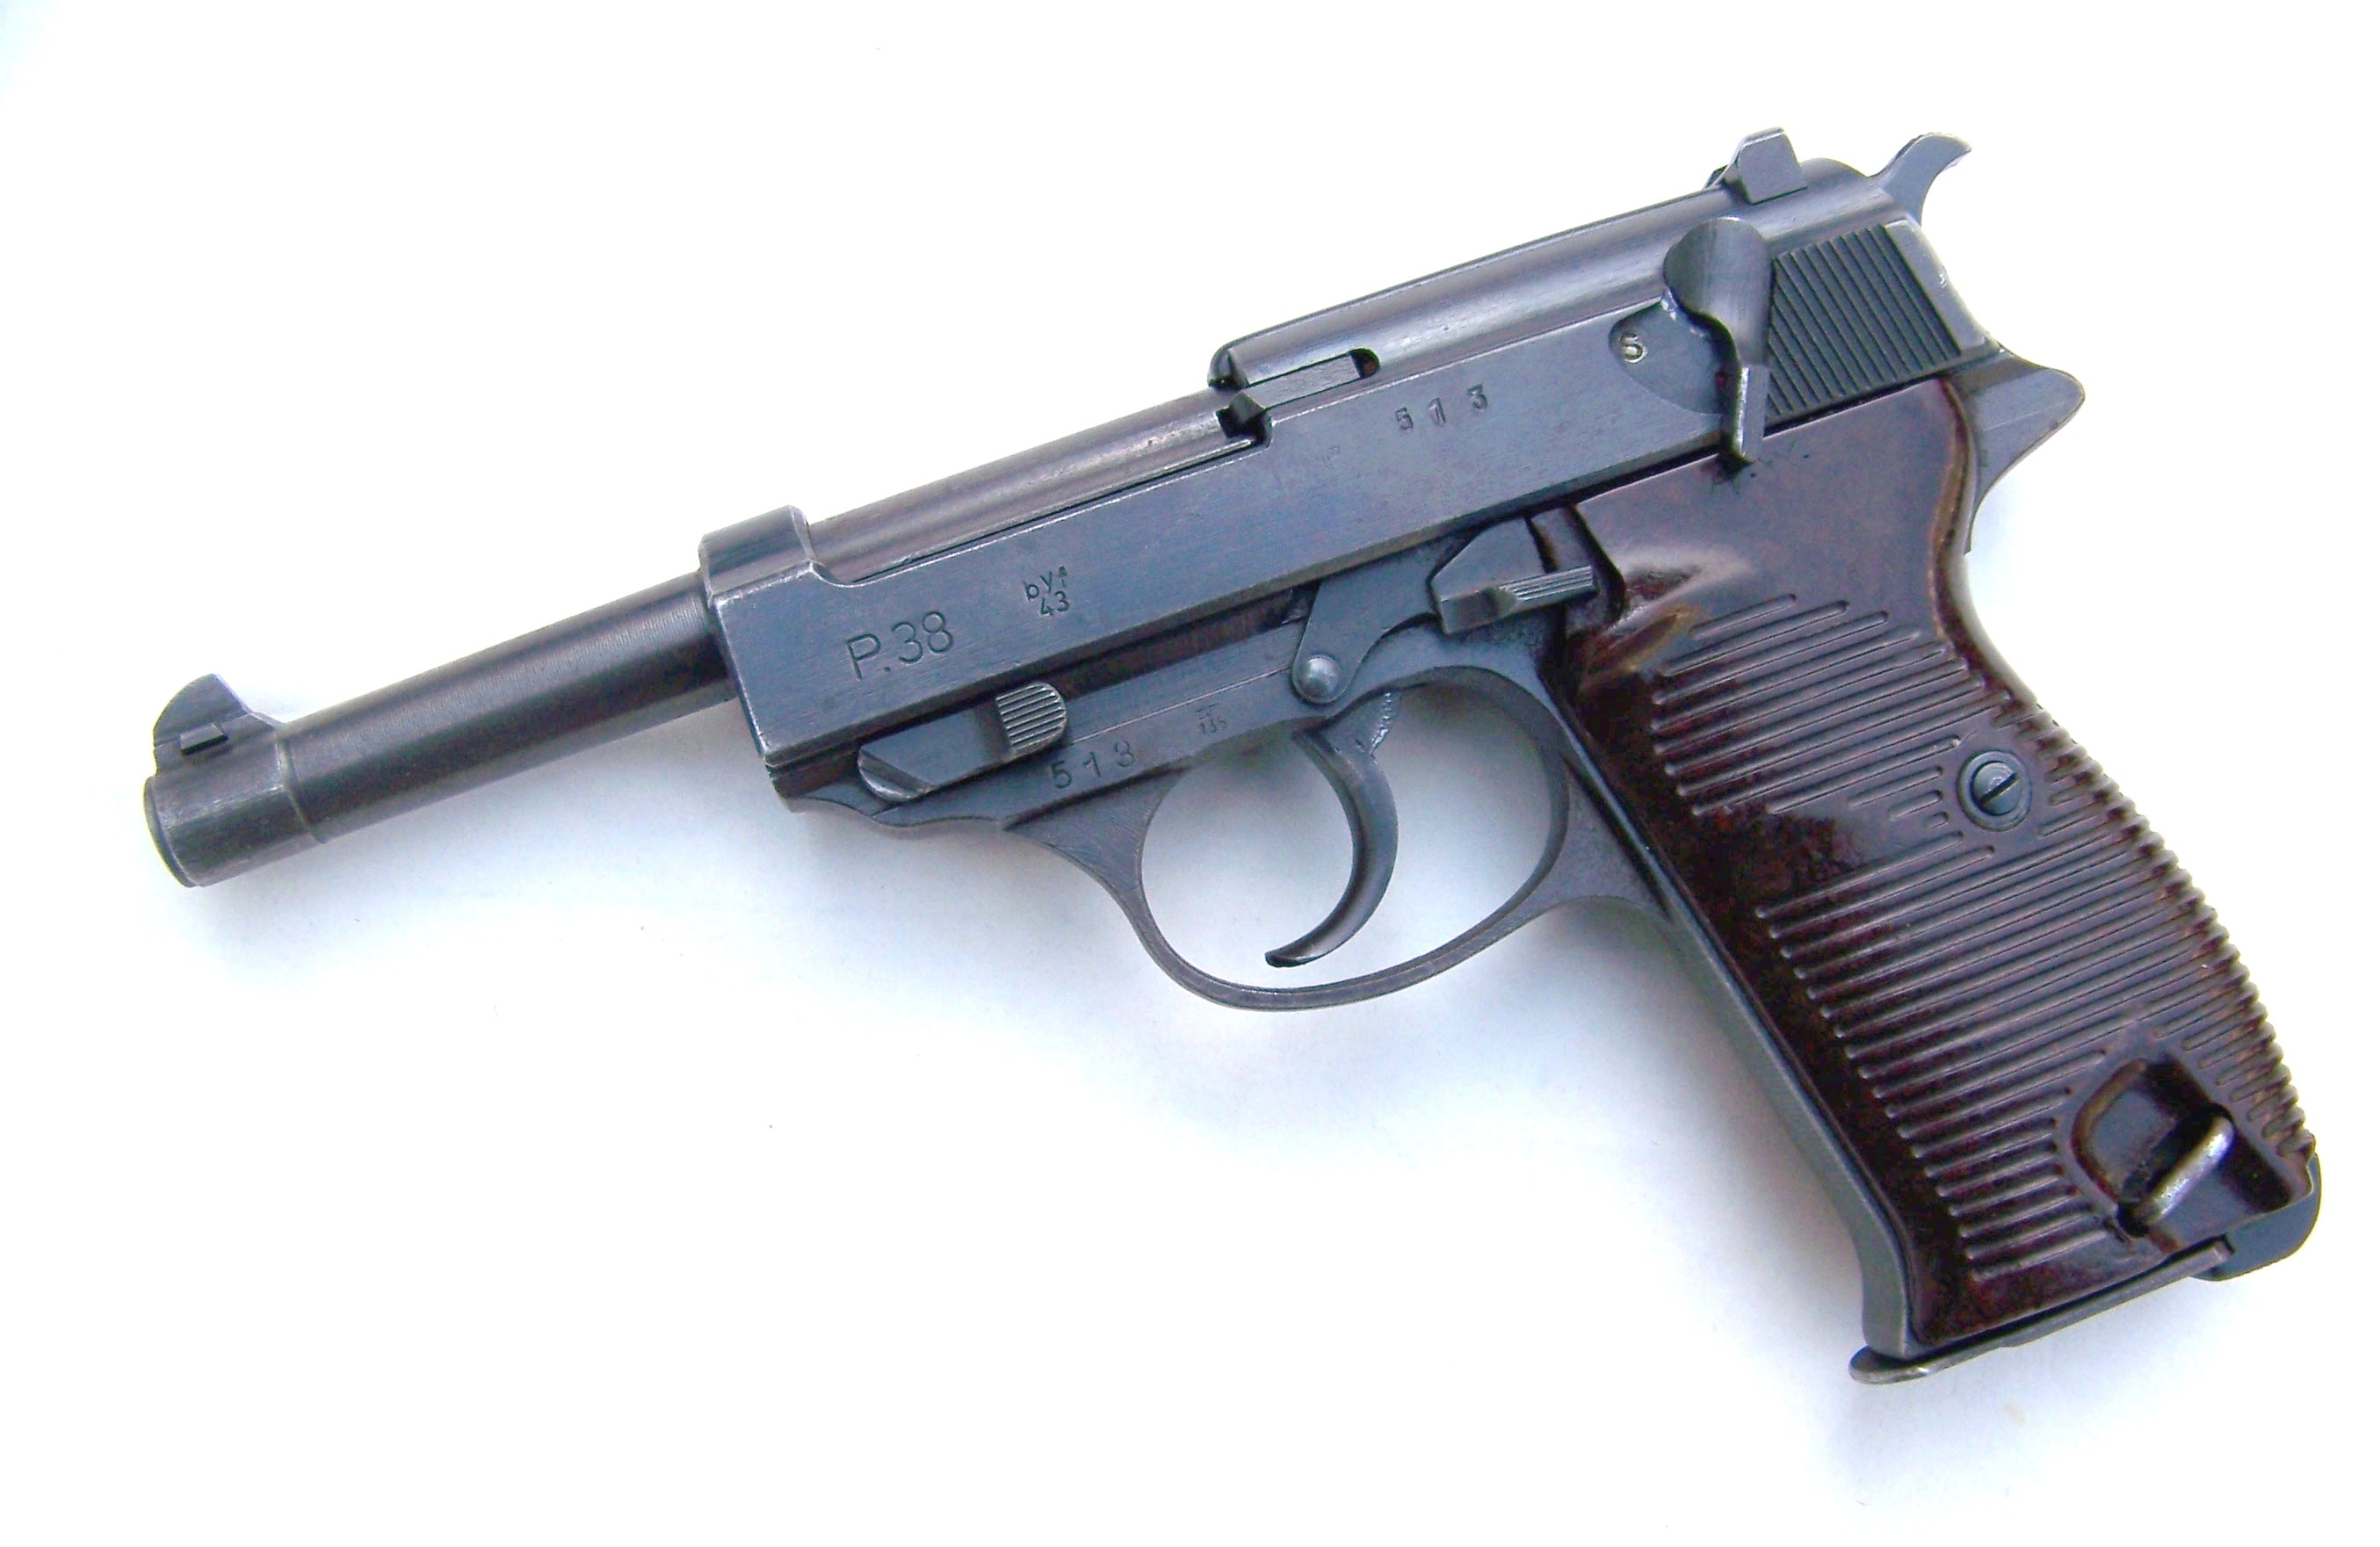 The Walther P 38, a Very Important War Dog